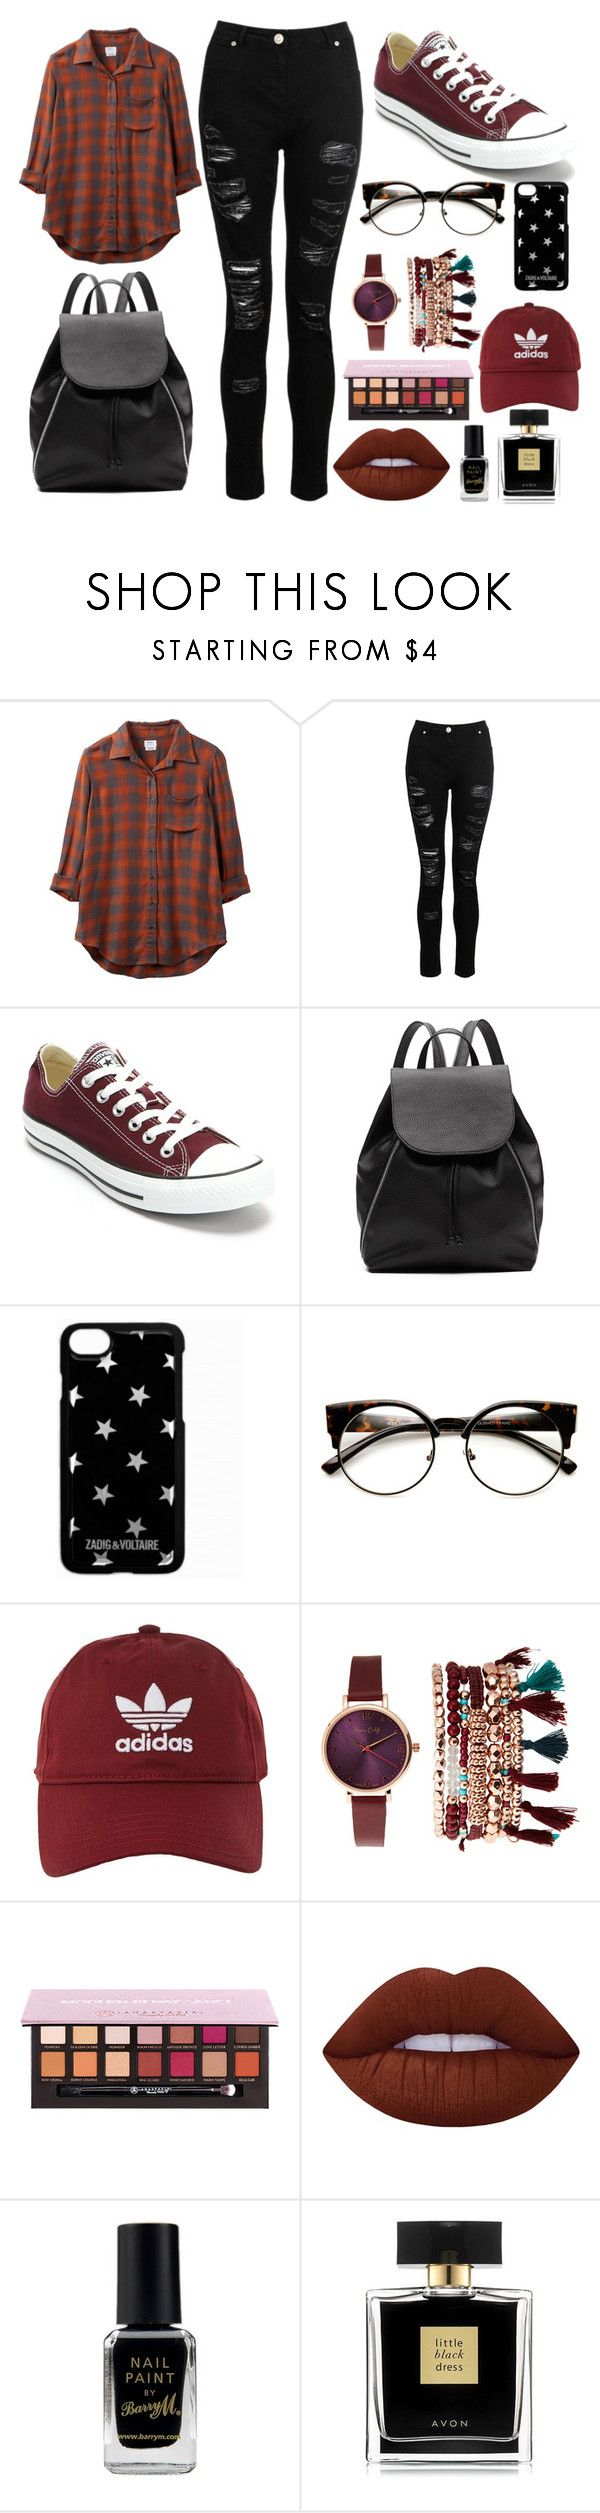 """""""Simple"""" by thisisalle on Polyvore featuring RVCA, Dorothy Perkins, Converse, Witchery, Zadig & Voltaire, adidas, Jessica Carlyle, Lime Crime, Barry M and Avon"""